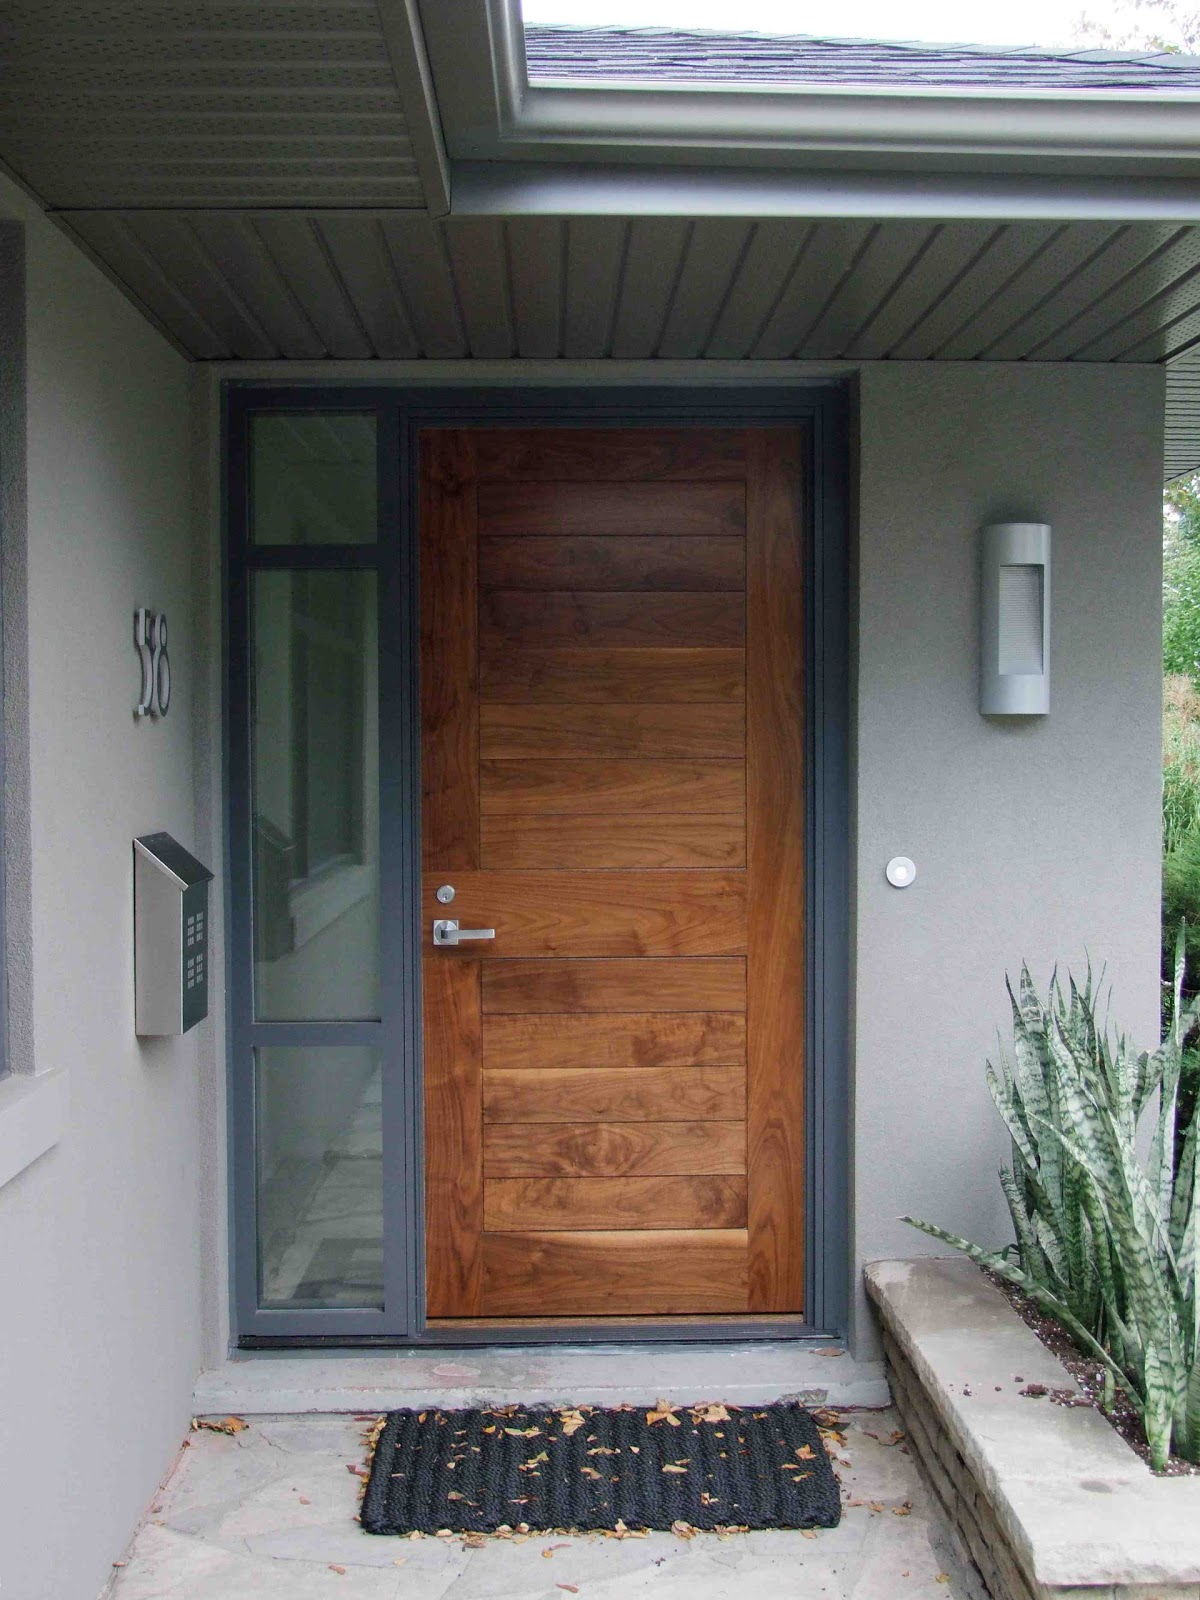 Creed 70 39 s bungalow makes a modern impression for Entrance door with window